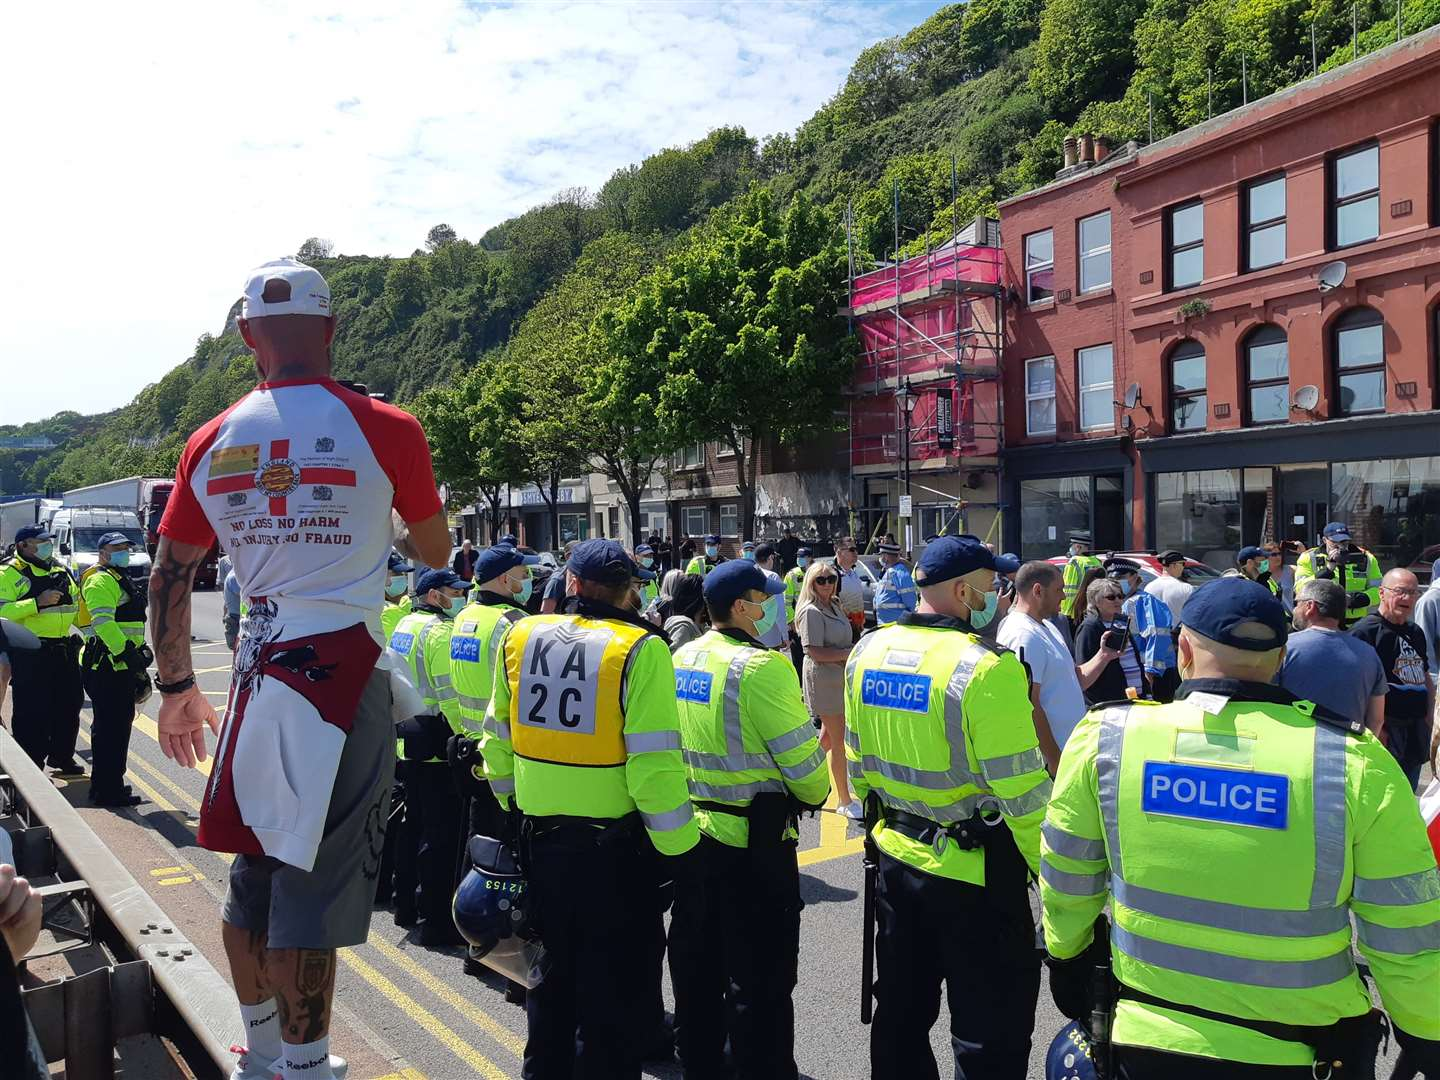 Police overwhelm protest as they close part of Snargate Street